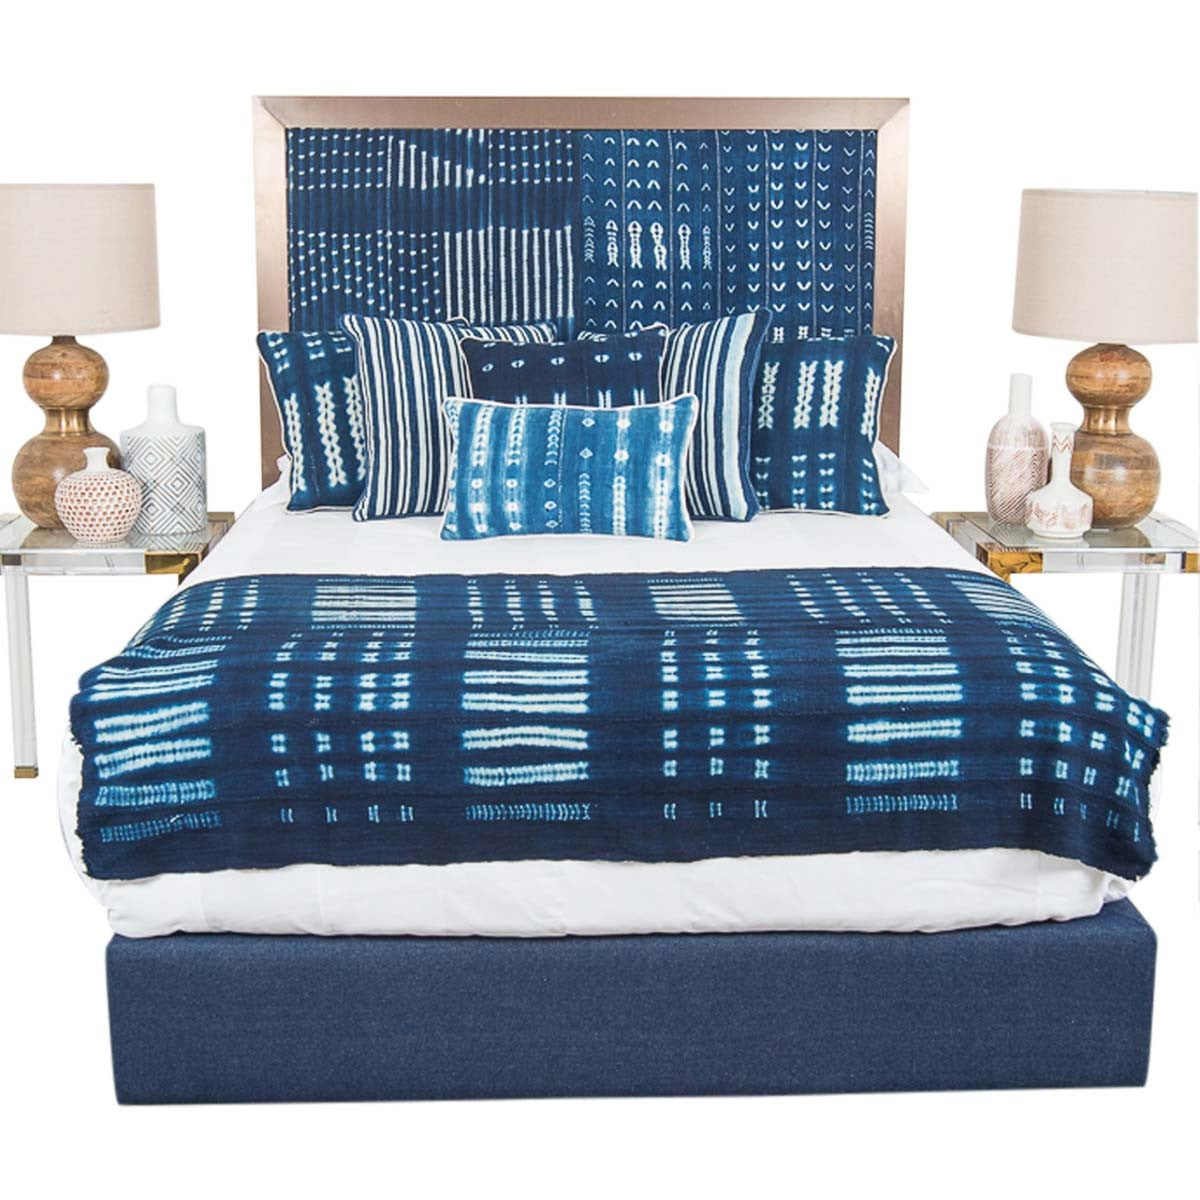 Ibiza Bed in Navy Mud Cloth - ModShop1.com